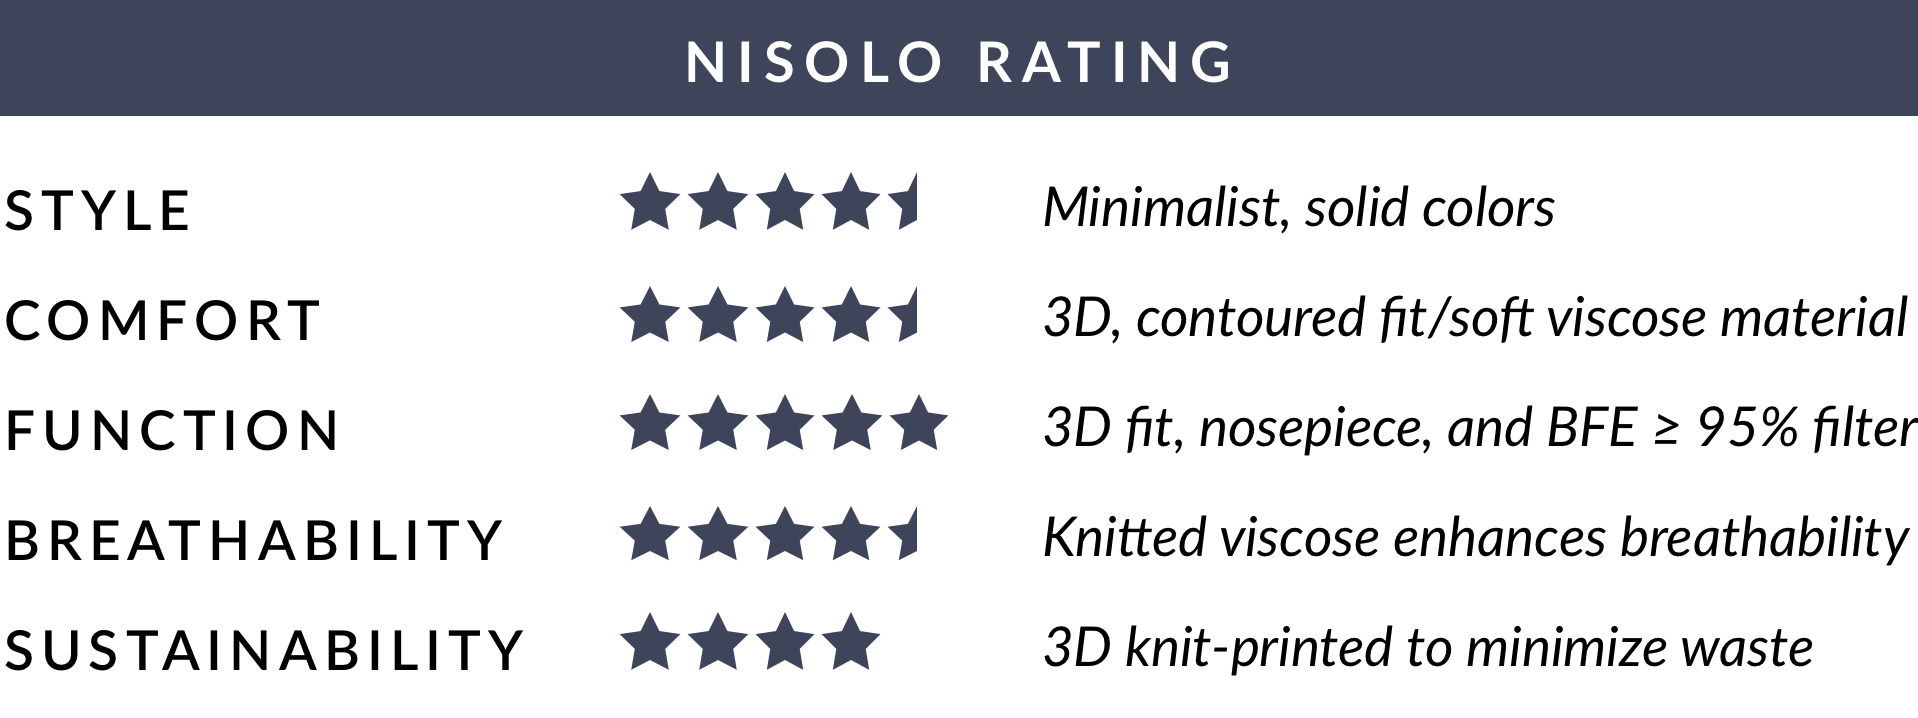 Nisolo Rating of Ministry of Supply 3D Print-Knit Filtered Mask + 10 Filters - Black - Average of 4.5 out of 5 stars